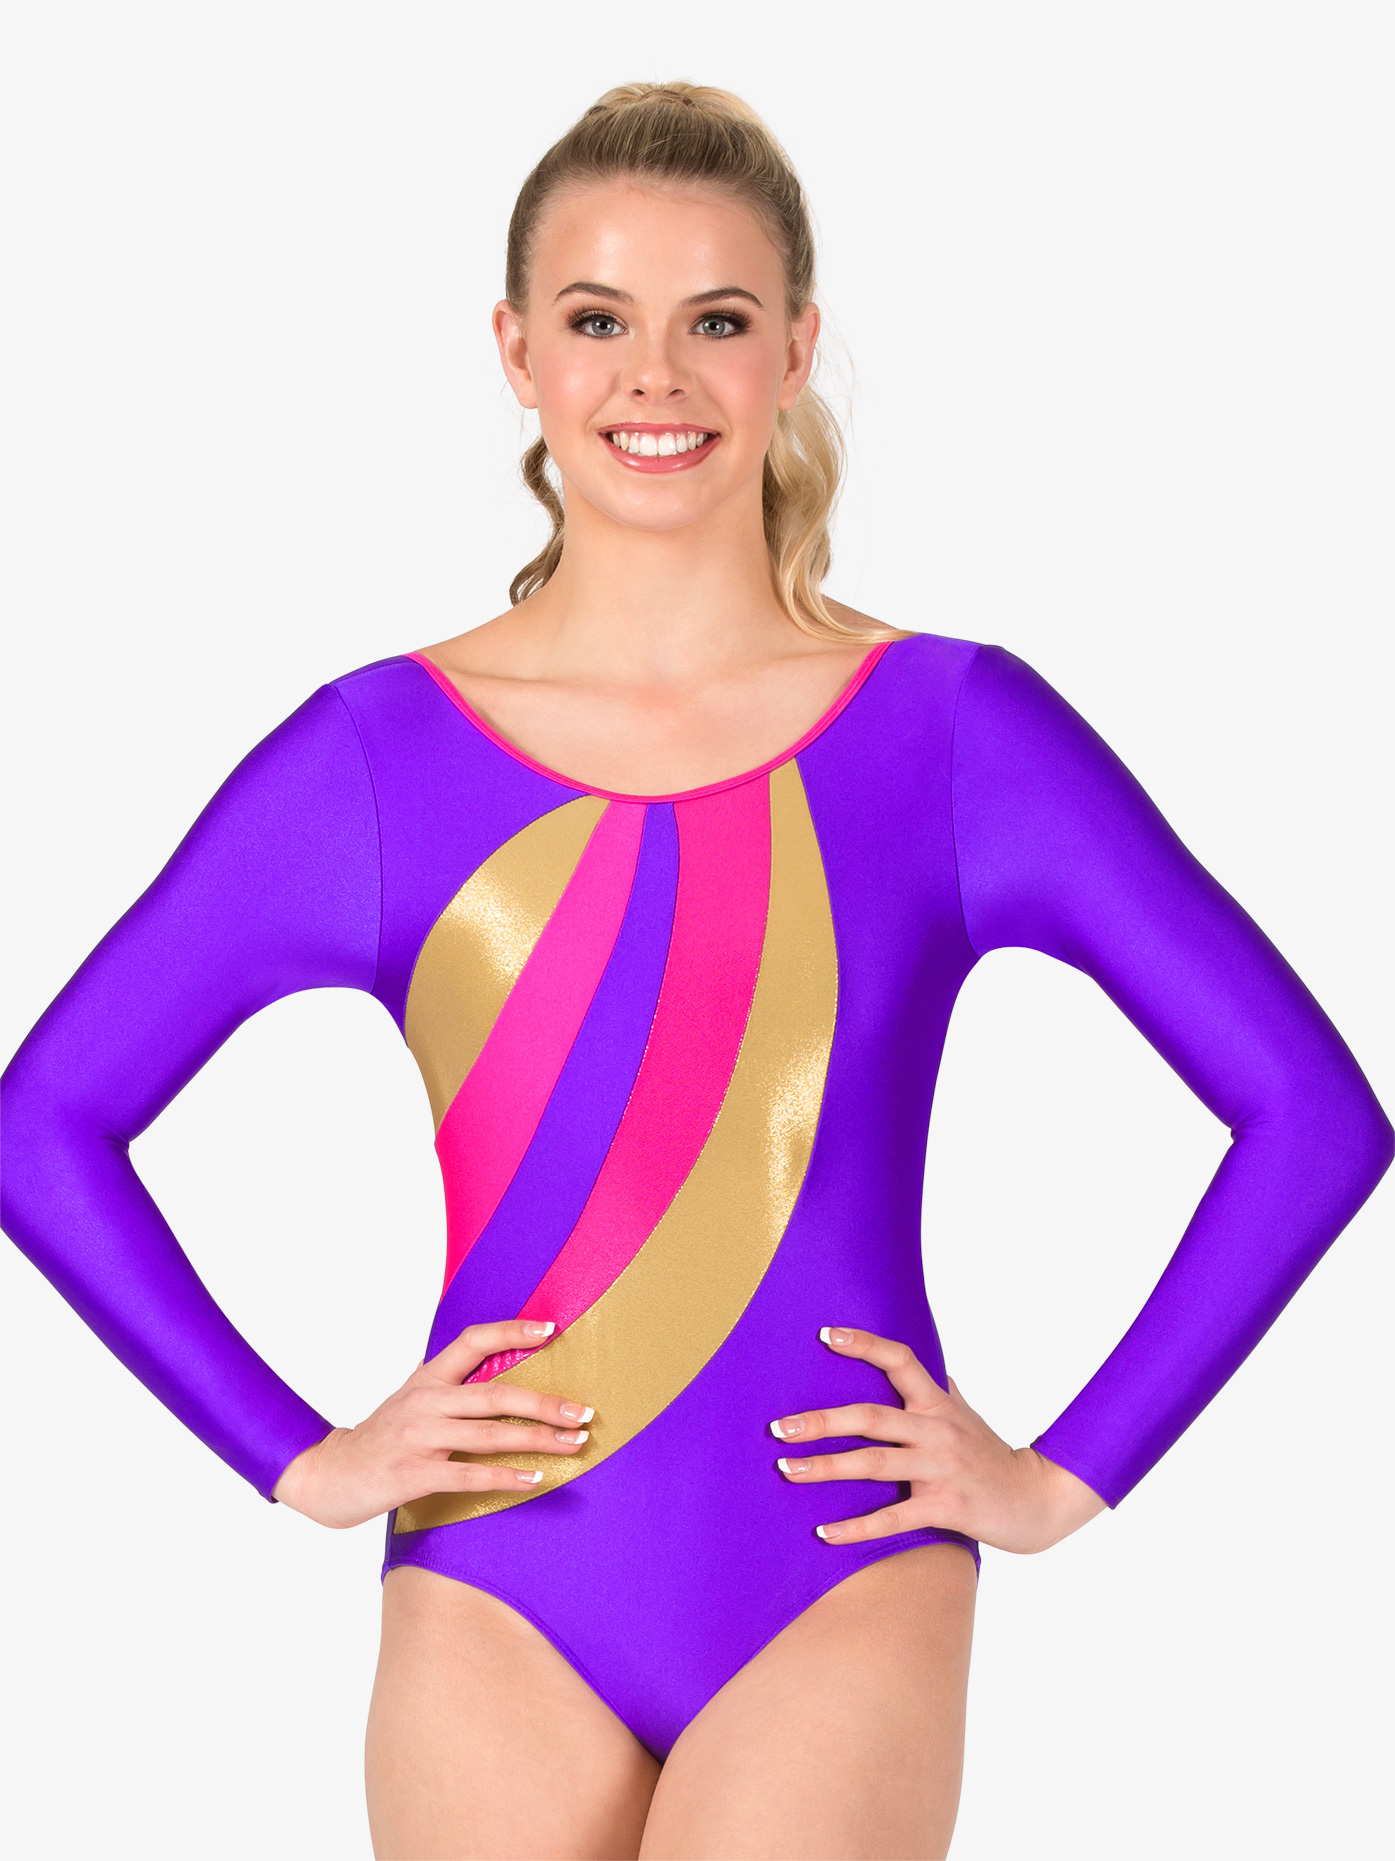 Perfect Balance Womens Gymnastics Spliced Print Long Sleeve Leotard G677